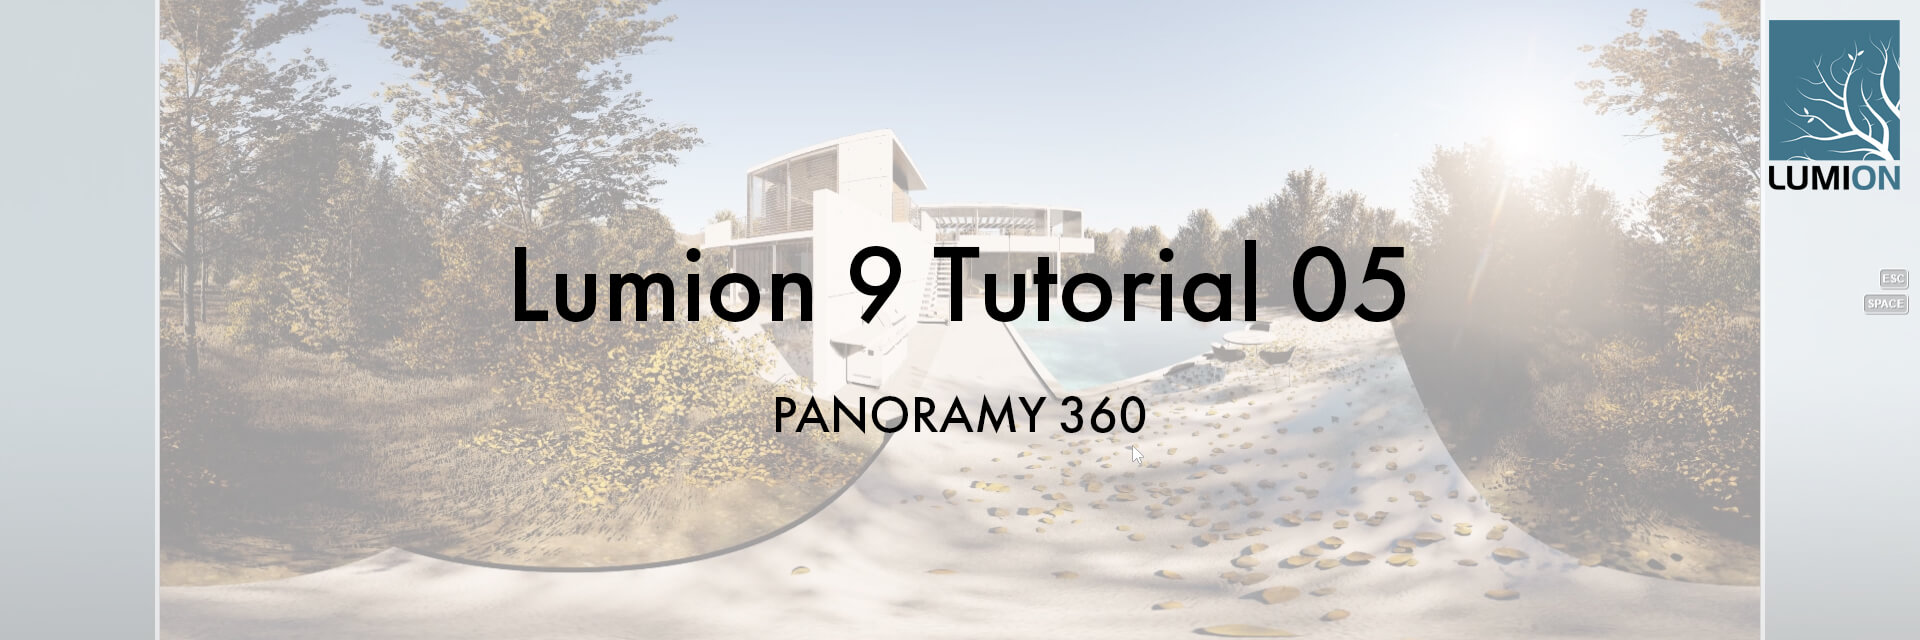 T05 ST - Lumion 9 Tutorial 05 PANORAMY 360